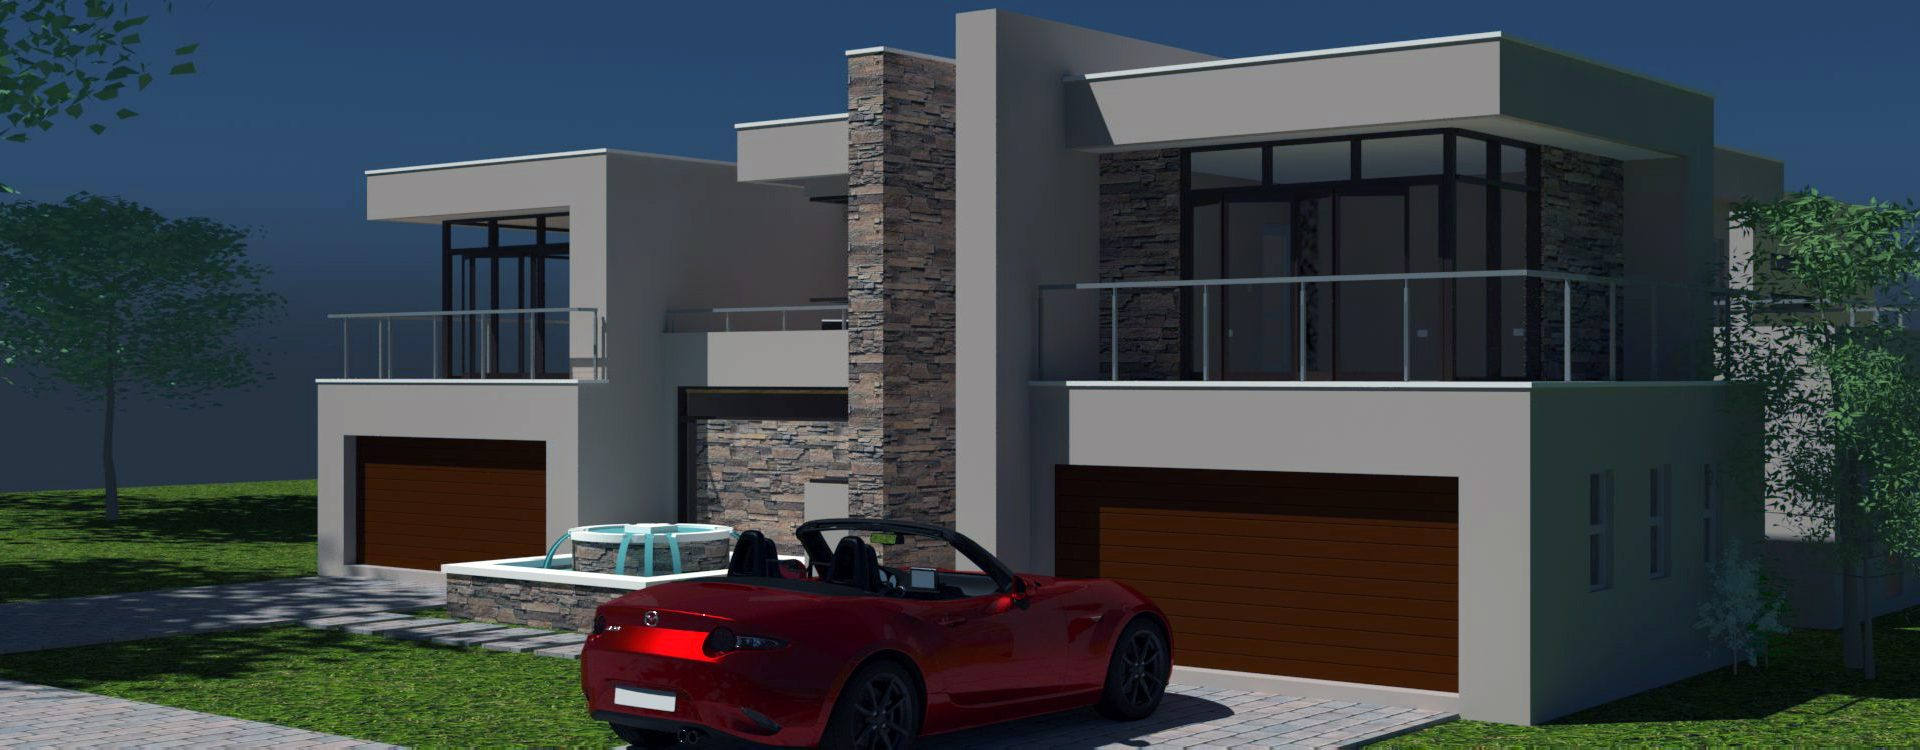 House Plans South Africa 4 Bedroom House Plans